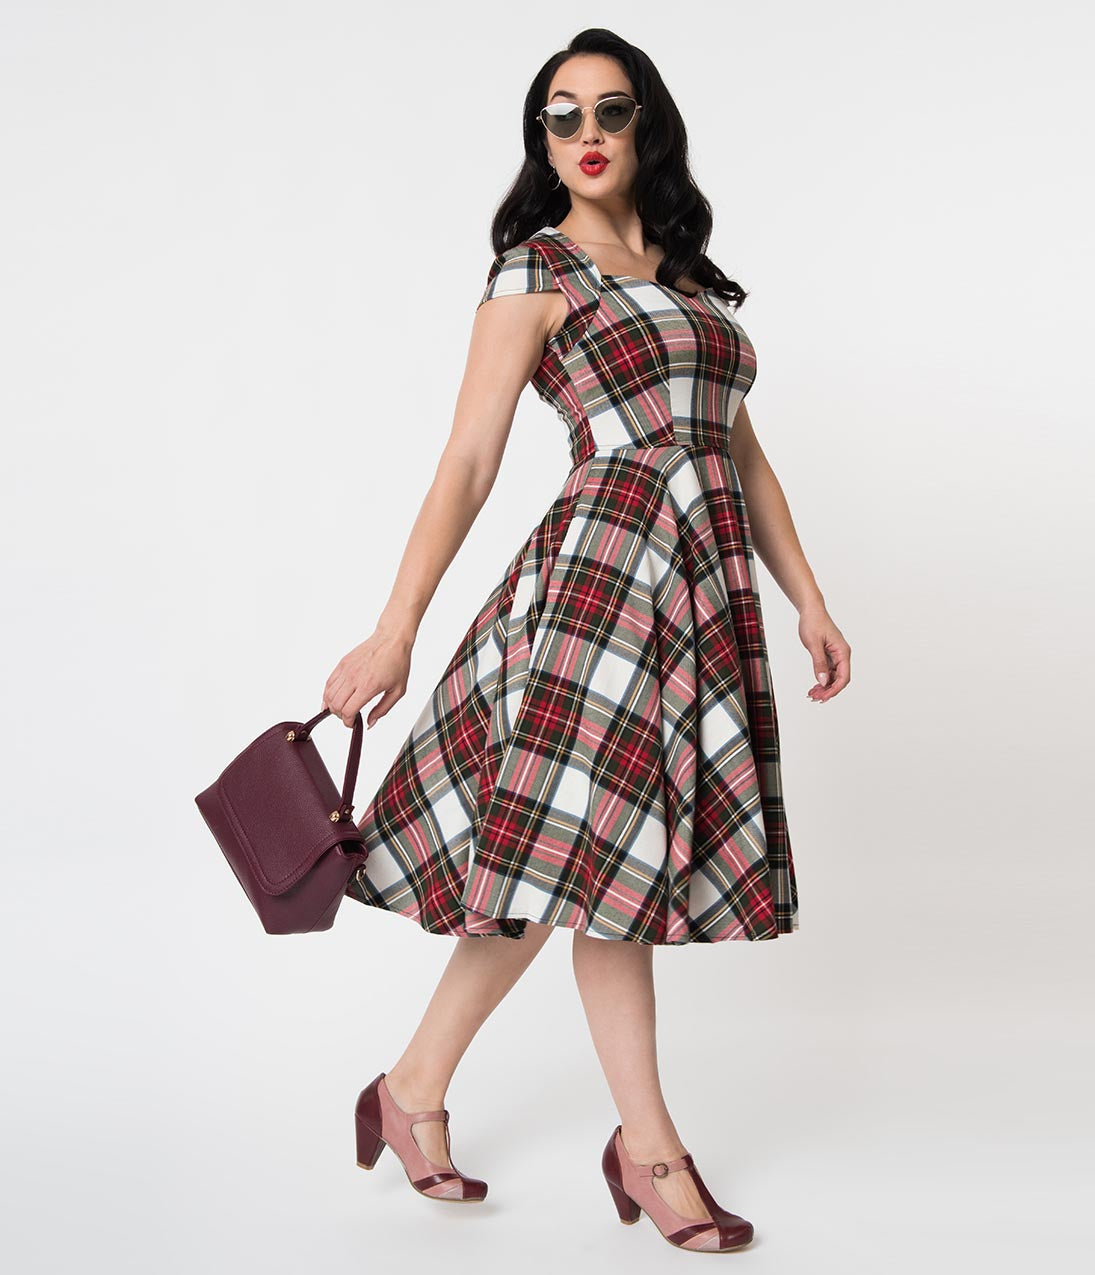 1950s Dresses, 50s Dresses | 1950s Style Dresses Hell Bunny 1950S Style Red  Green Tartan Woven Aberdeen Swing Dress $92.00 AT vintagedancer.com